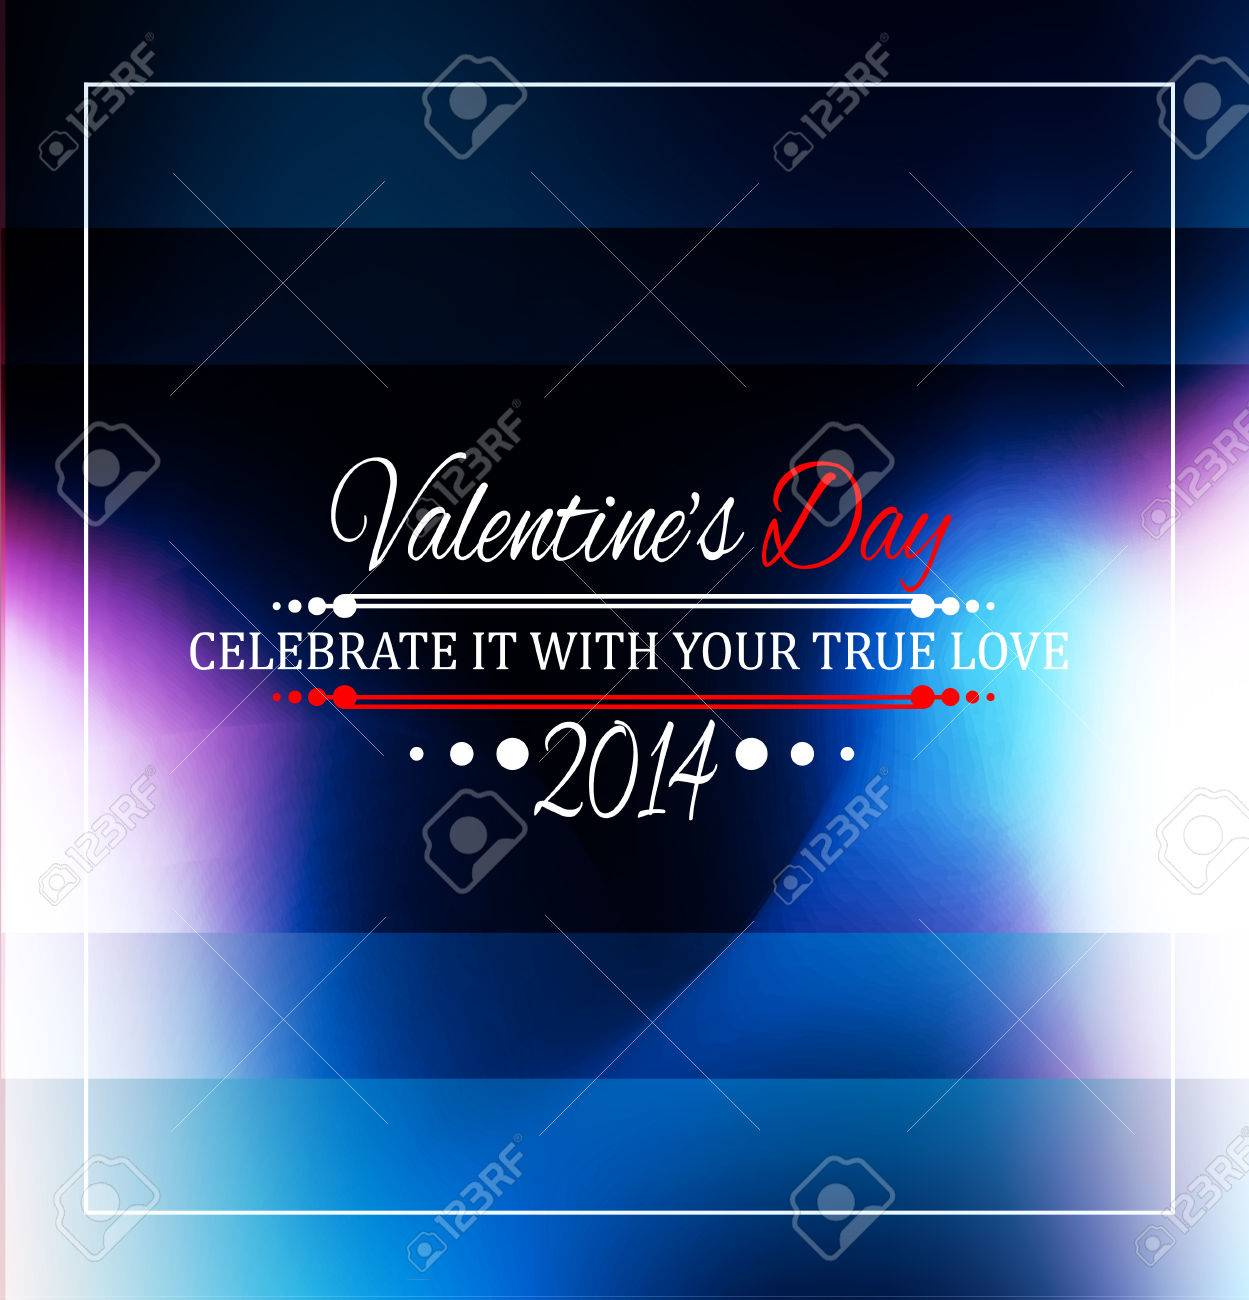 valentine s day template stunning hearts and colors for valentine s day template stunning hearts and colors for your flyer backgrounds stock vector